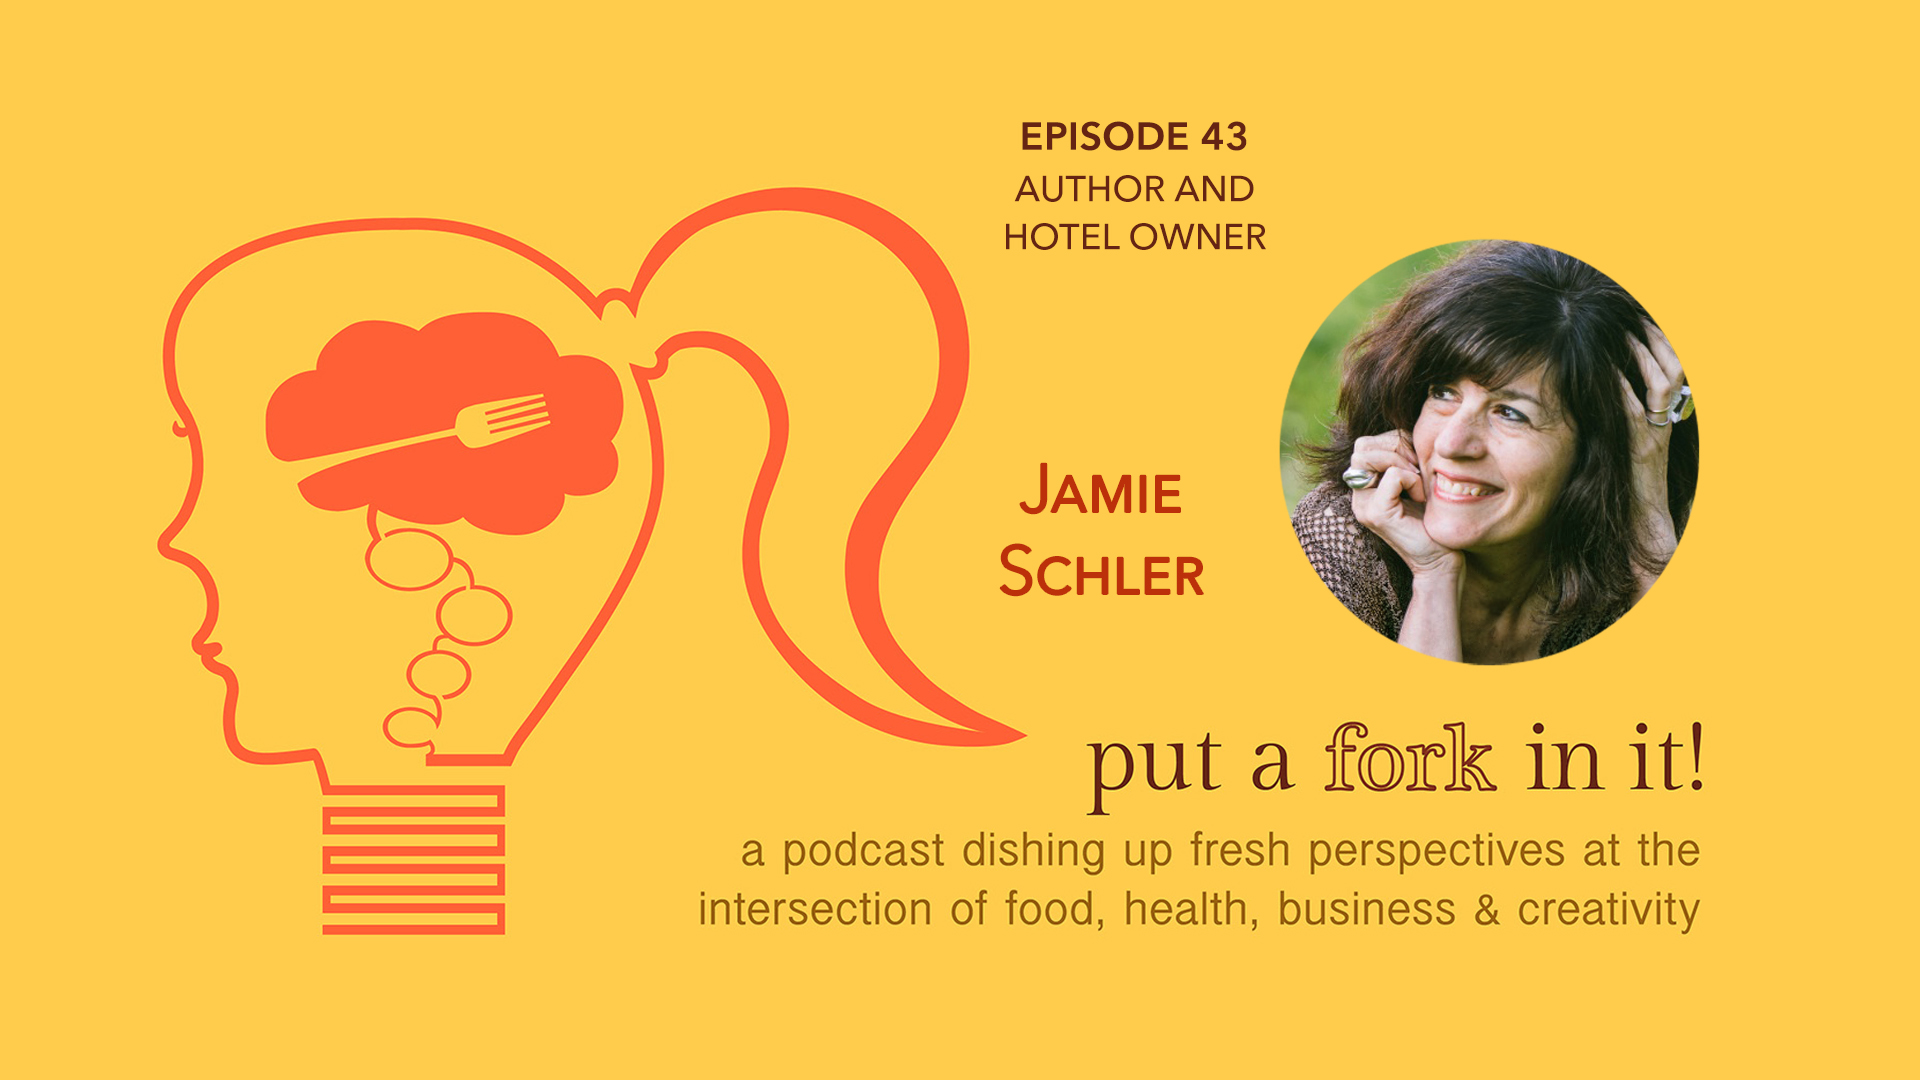 43: Jamie Schler, cookbook author, food writer, owner of Hotel Diderot